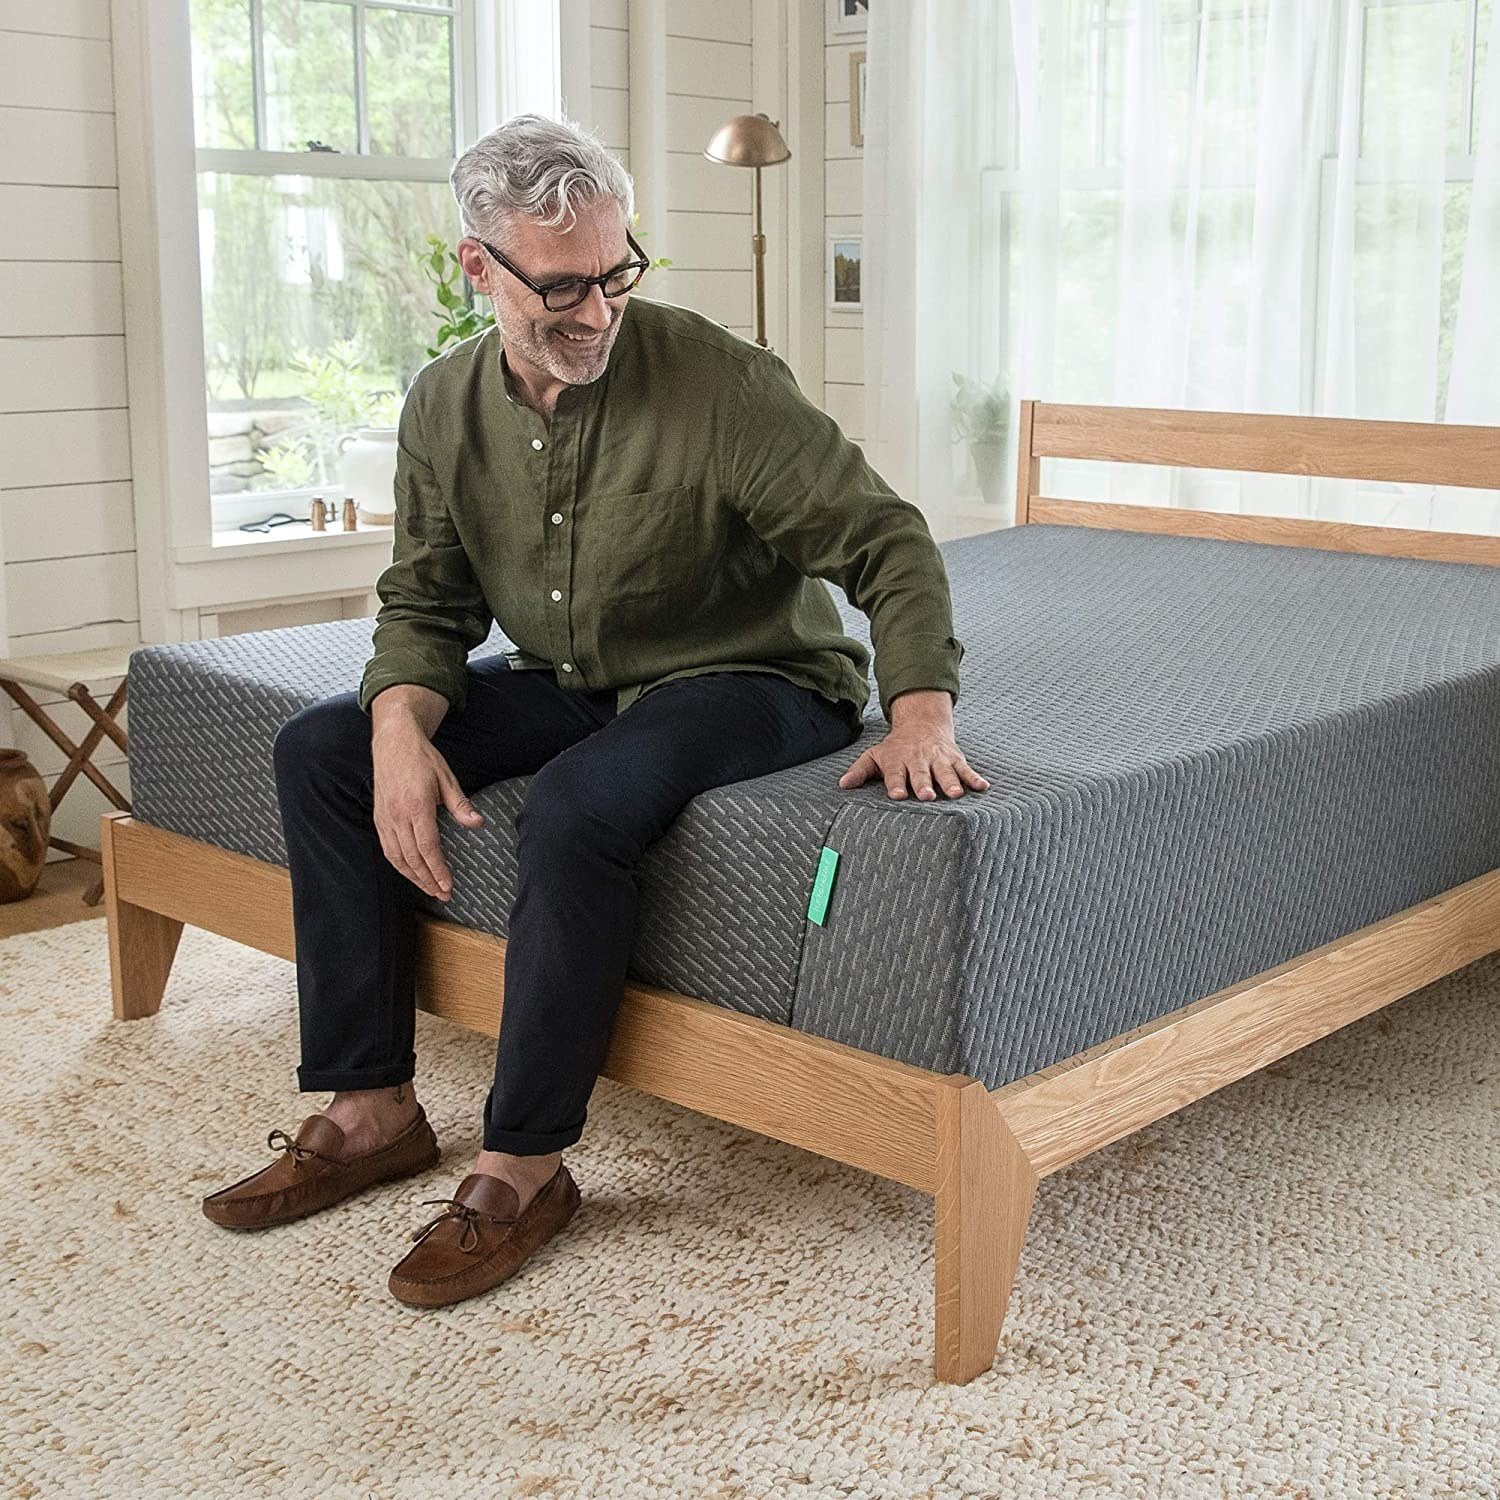 the mattress with a model sitting on it, showing how adaptive it is